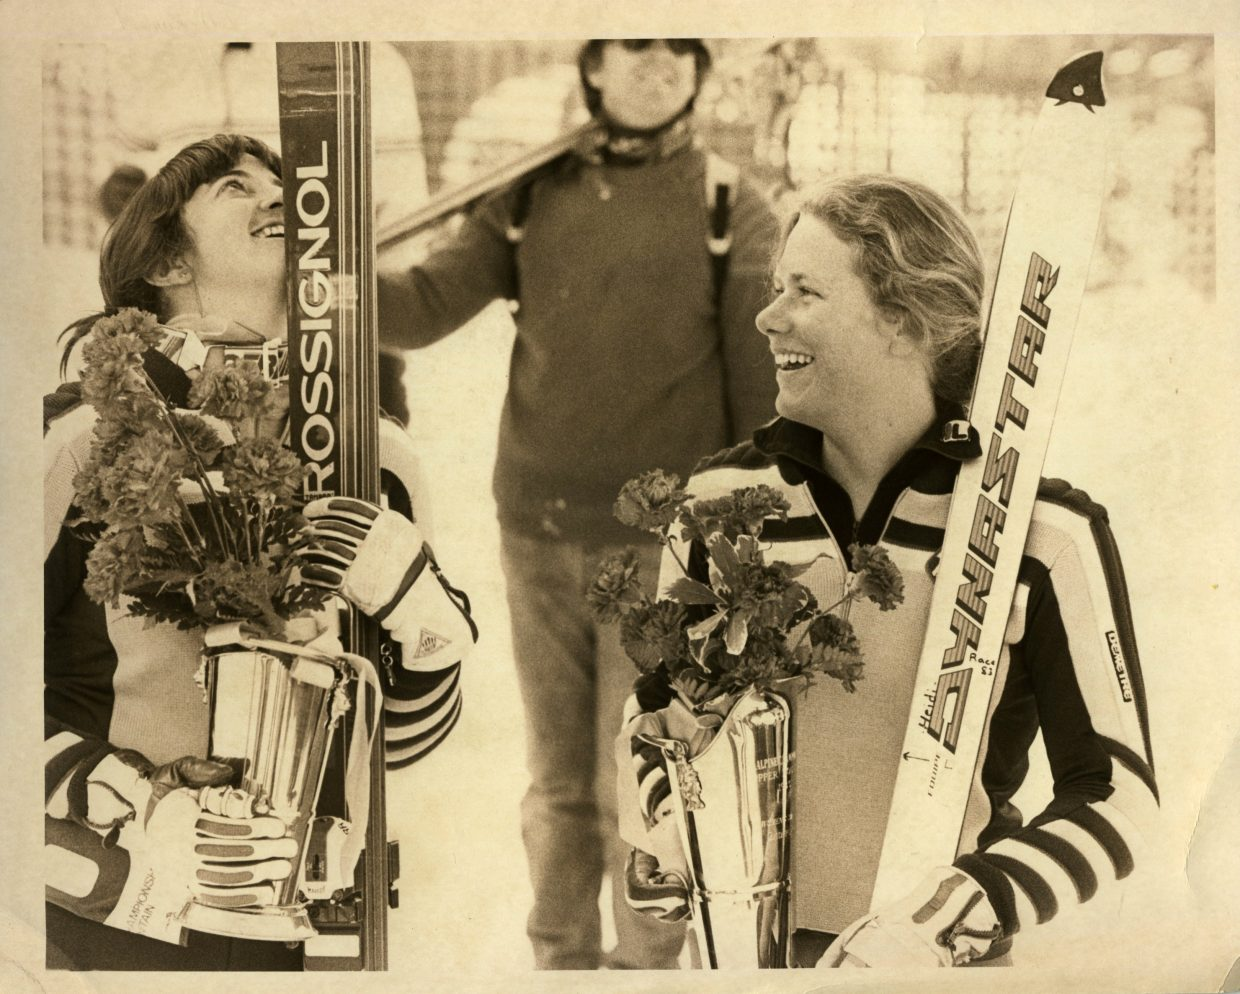 Longtime World Cup and U.S. Ski Team Alpine skier Heidi Bowes, of Steamboat Springs, placed second to teammate Tamara McKinney, in the slalom event at the U.S. National Championshipsat Copper Mountain in 1983. It was the year McKinney won the overall women's World Cup. photo: Tom Ross